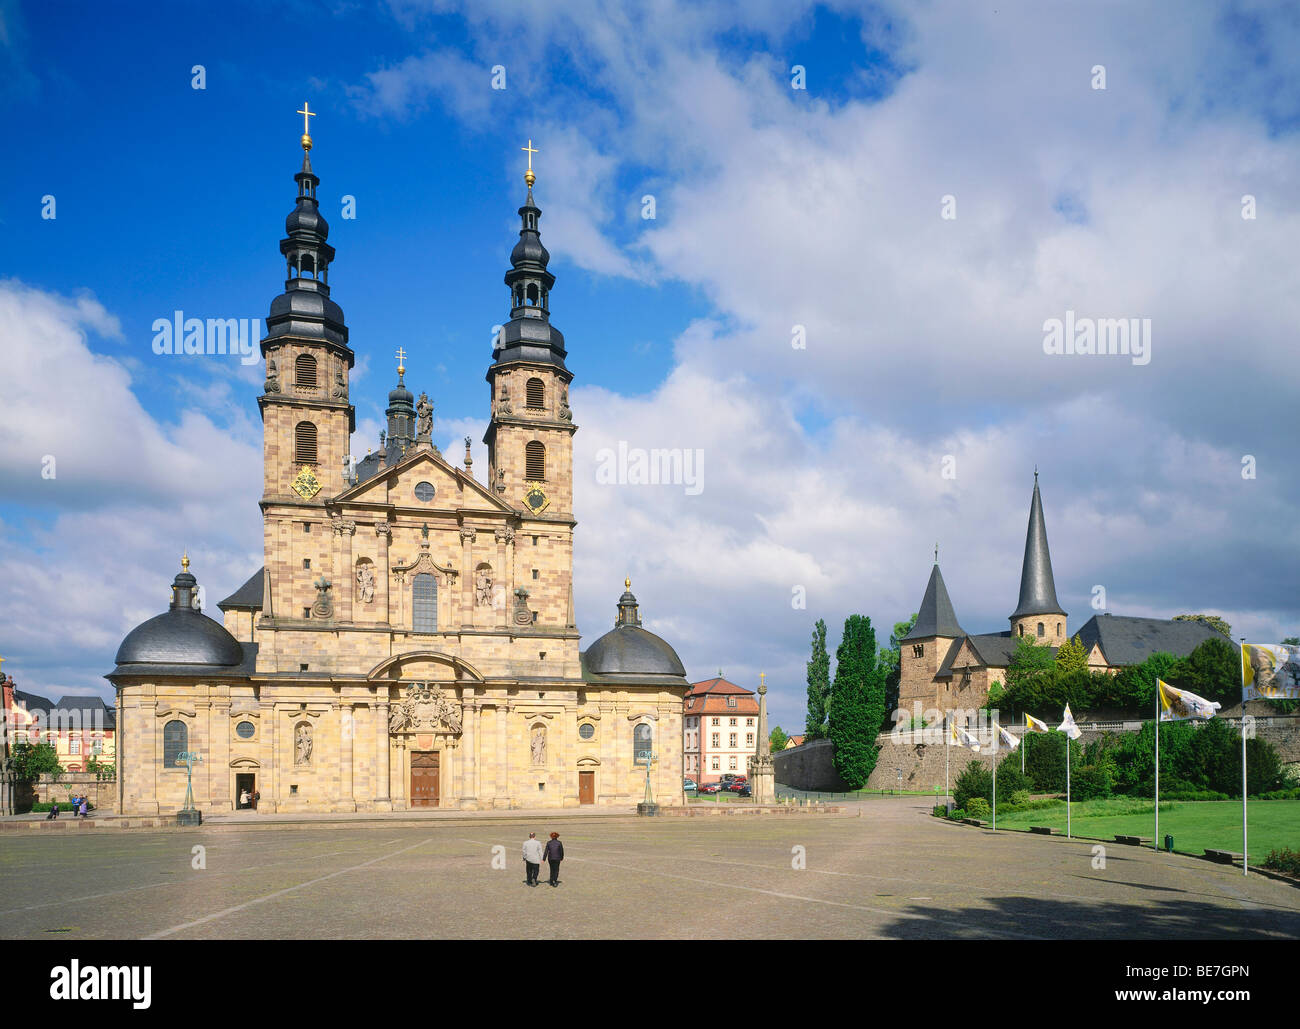 Cathedral, built by J. Dientzenhofer 1704-1712 with the romanic chapel of Saint Michael, Fulda, Hesse, Germany, - Stock Image